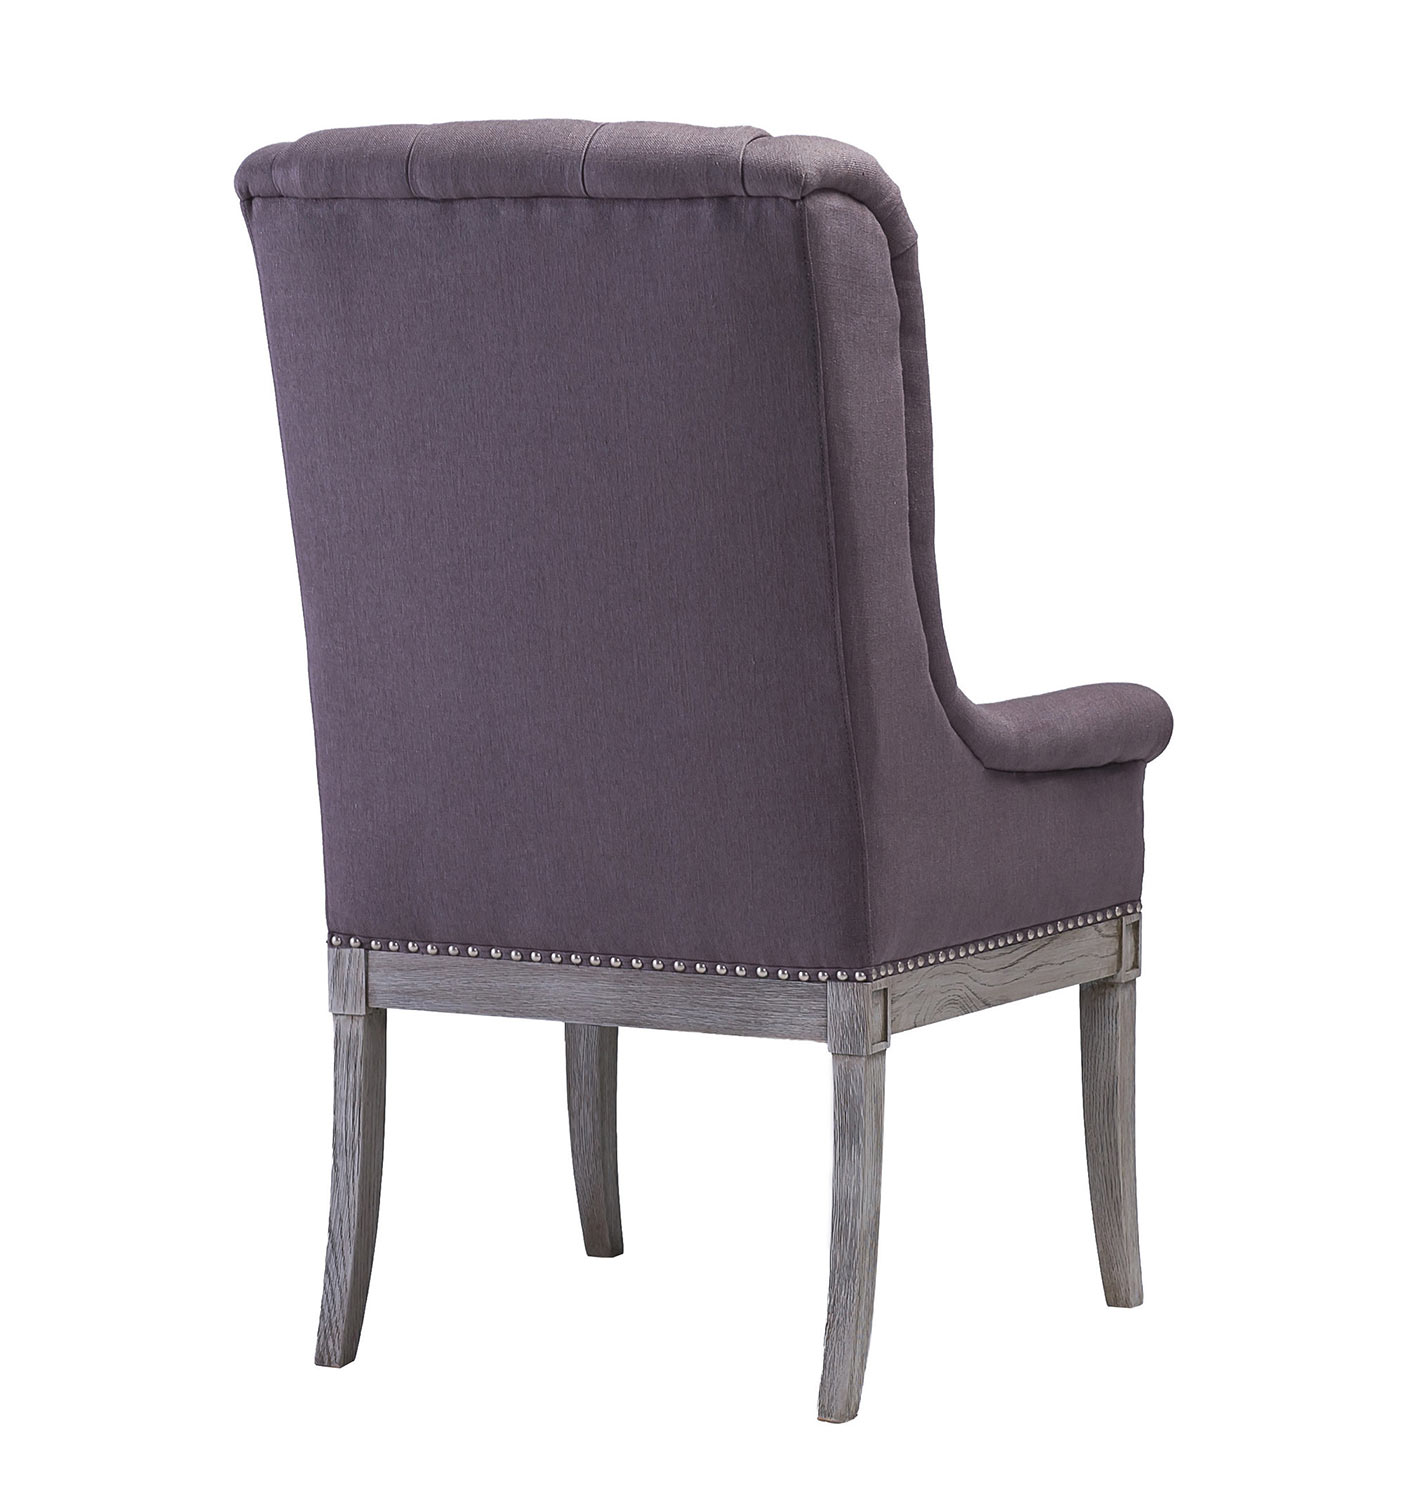 TOV Furniture Addington Arm Chair - Grey